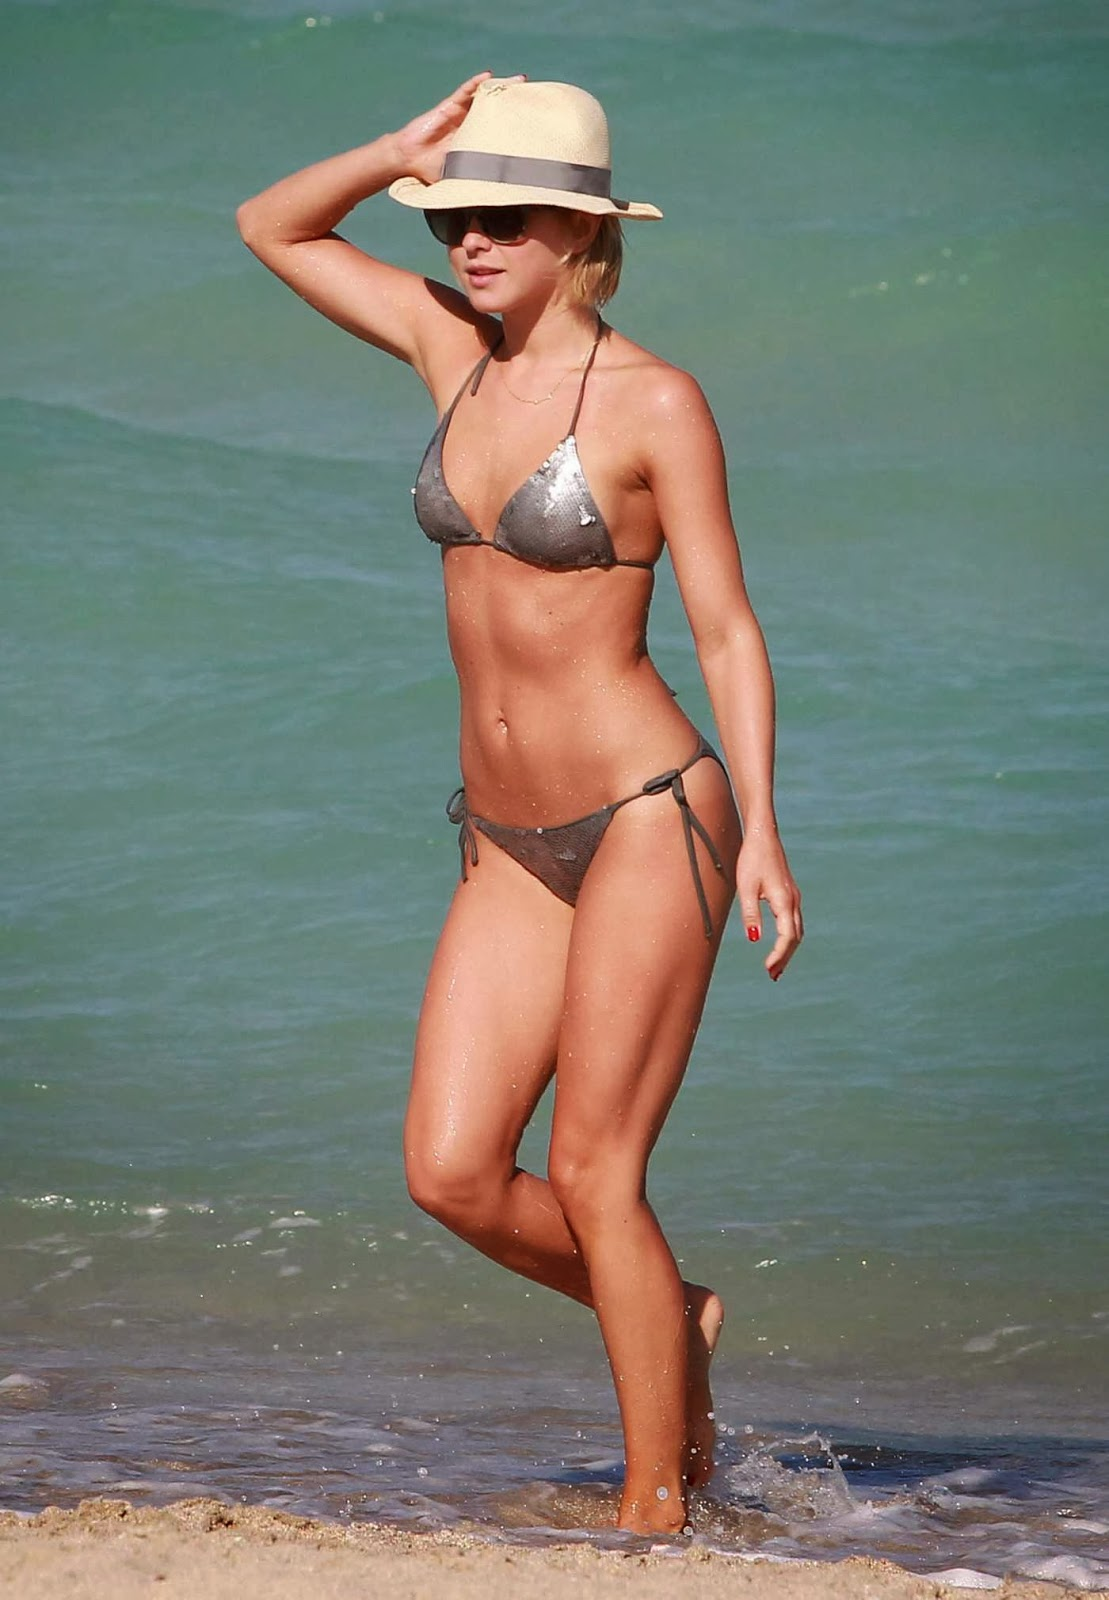 Agree, Julianne hough miami bikini